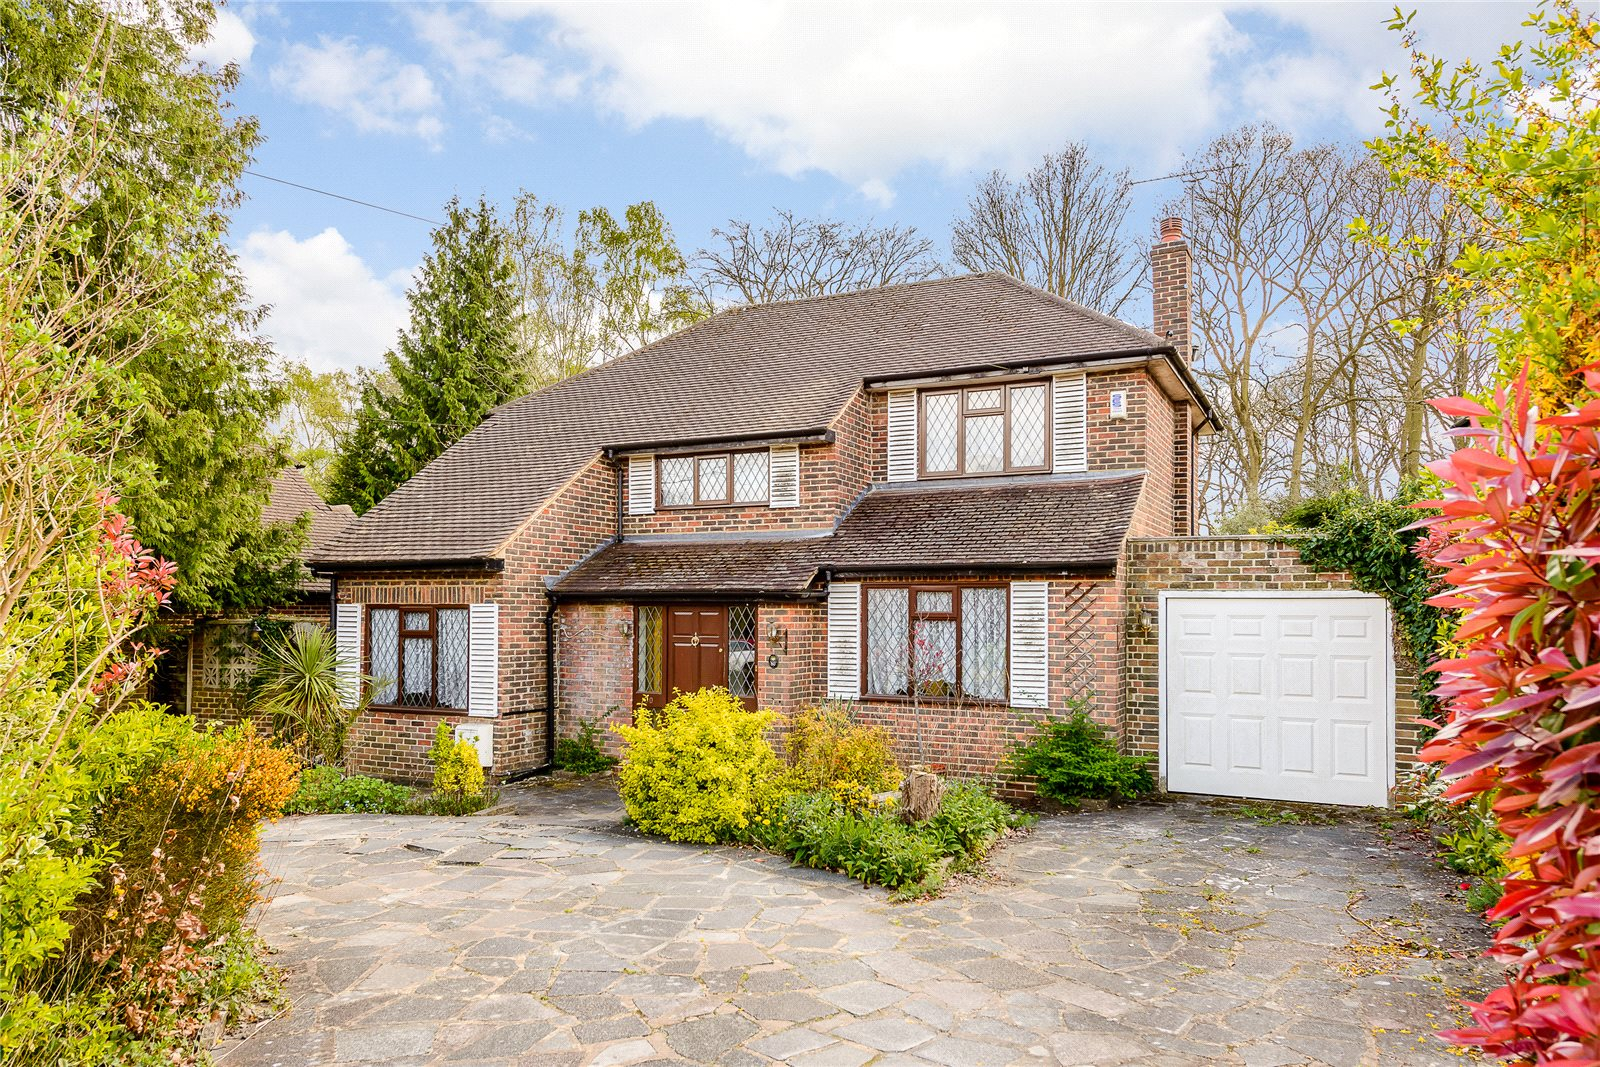 一戸建て のために 売買 アット High Beeches, Gerrards Cross, Buckinghamshire, SL9 Gerrards Cross, イギリス